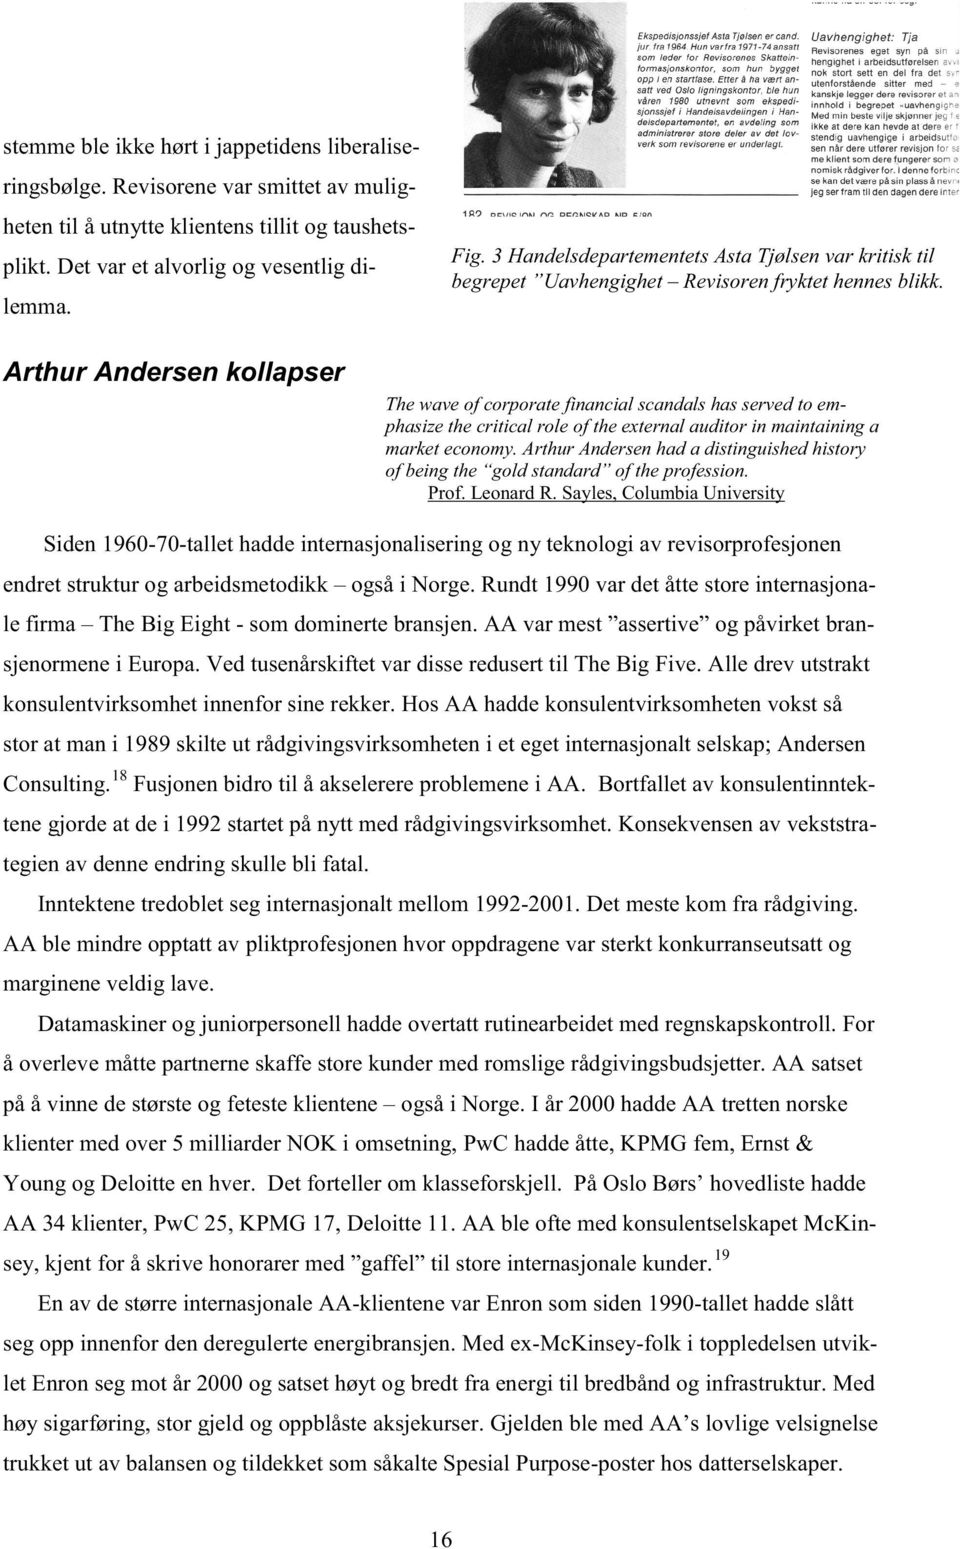 Arthur Andersen kollapser The wave of corporate financial scandals has served to emphasize the critical role of the external auditor in maintaining a market economy.